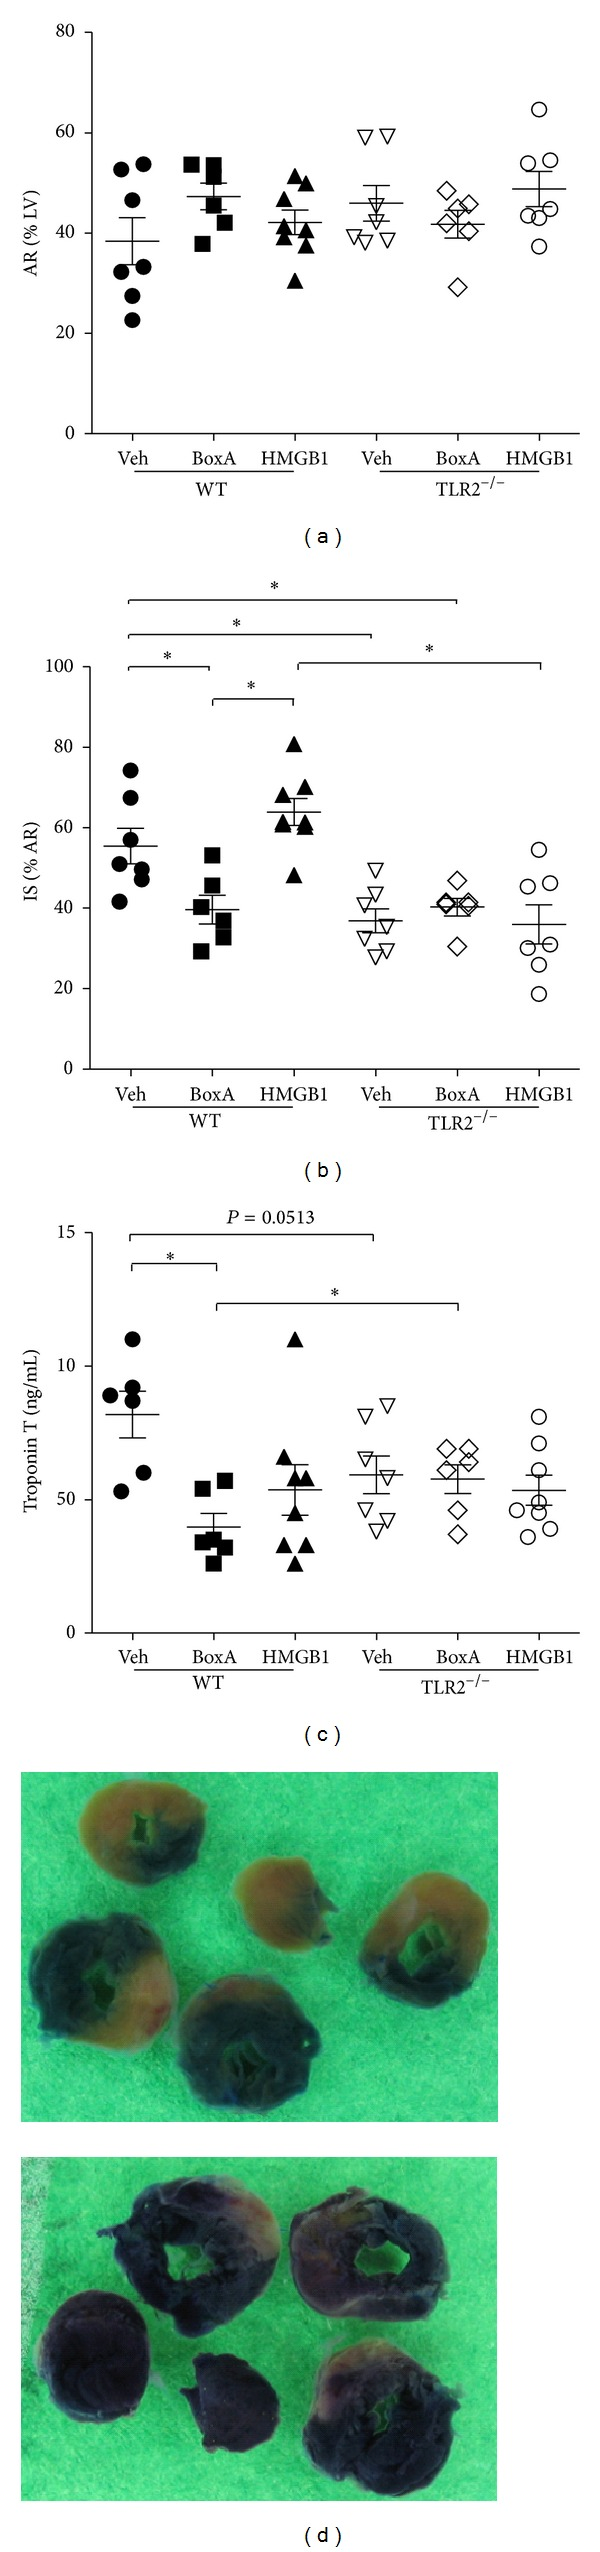 Quantification of myocardial damage after ischemia (30 min) and reperfusion (24 hrs). (a) The area at risk relative to the left ventricle (AR%LV) was not different between experimental groups. HMGB1 Box A reduced (b) infarct size relative to the AR (IS%AR) and (c) Troponin T plasma levels compared to vehicle-treated (Veh) WT animals. TLR2 −/− mice showed reduced myocardial damage compared to WT mice, whereas Box A had no protective effect in these animals. Injection with HMGB1 did not aggravate myocardial necrosis in both genotypes. (d) Hearts perfused with EvansBlue (EB, above) were cut into five equal sections, photographed, and incubated with p-nitro-blue-tetrazolium (NBT, below) for the quantification of AR and IS. * P